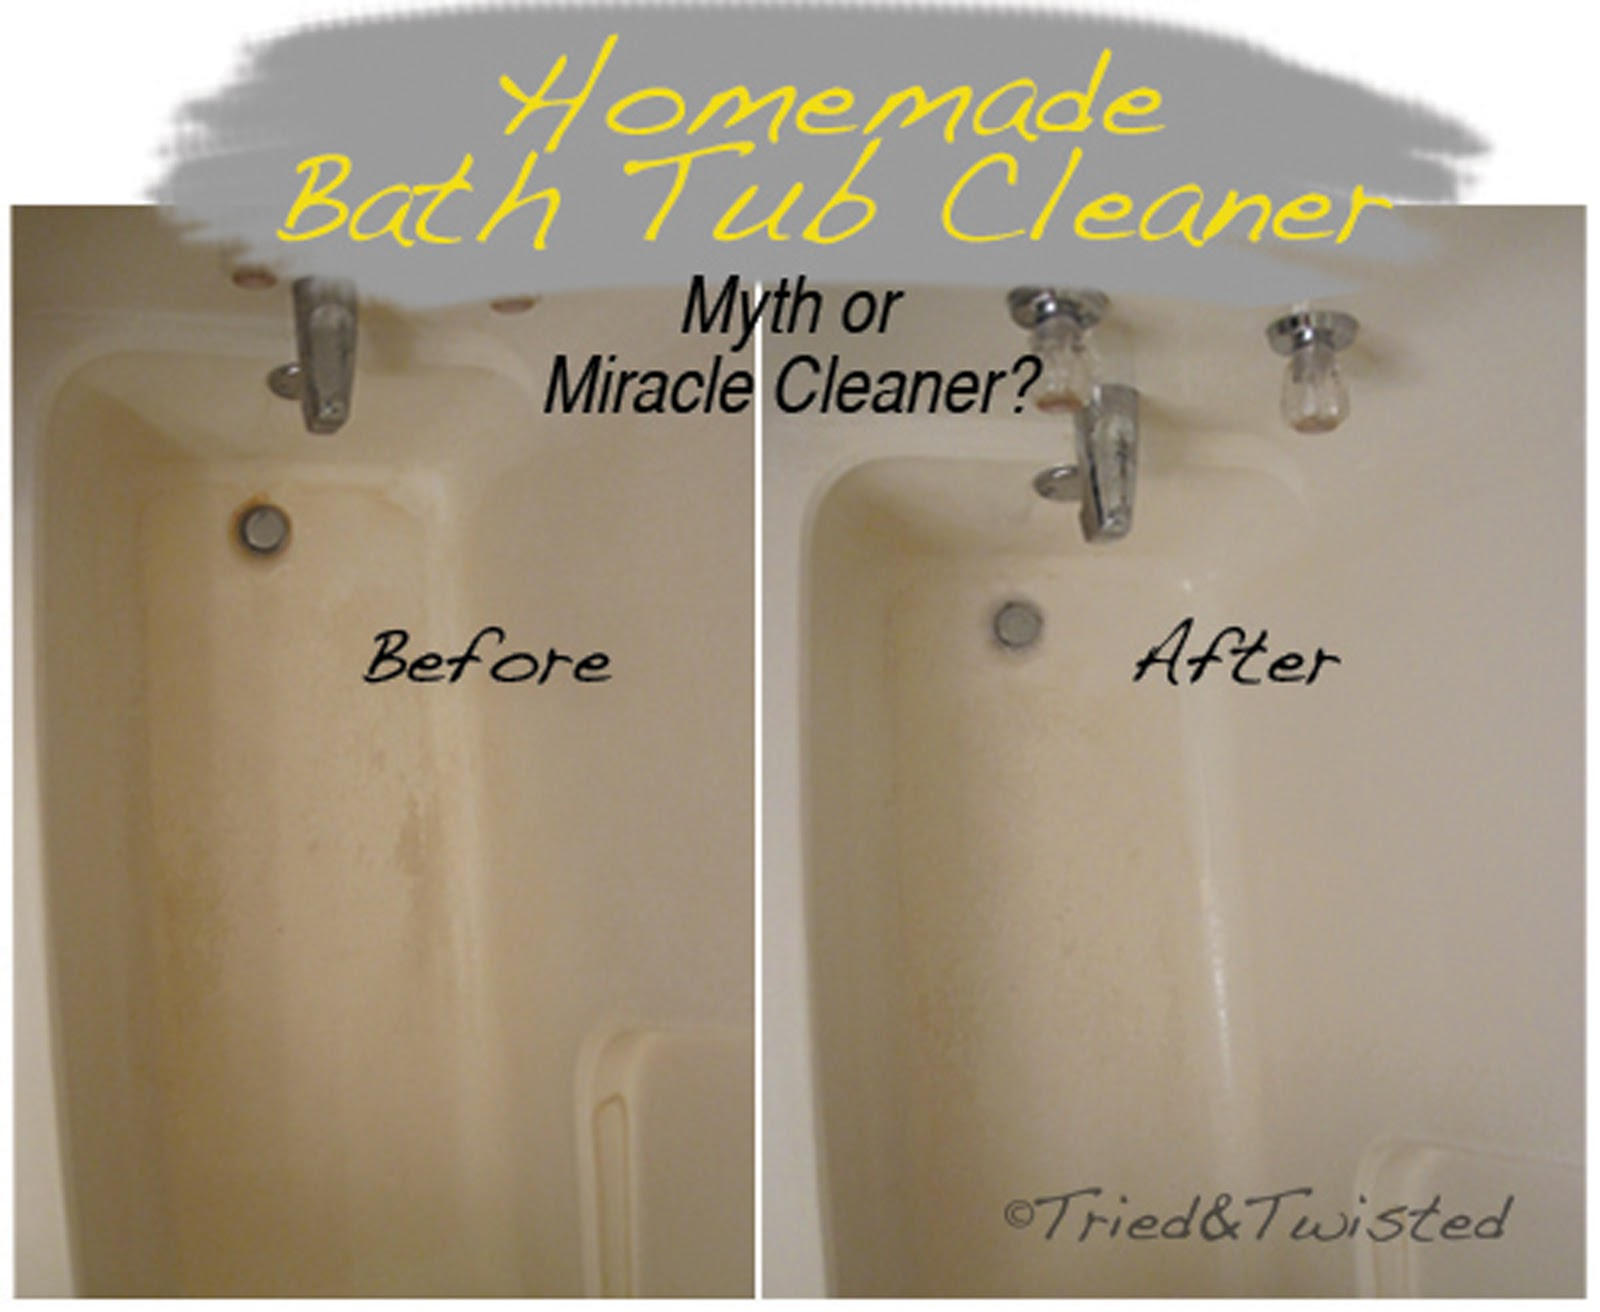 Superb Homemade Bath Tub Cleaner Myth Or Miracle Cleaner | Tried U0026 Twisted